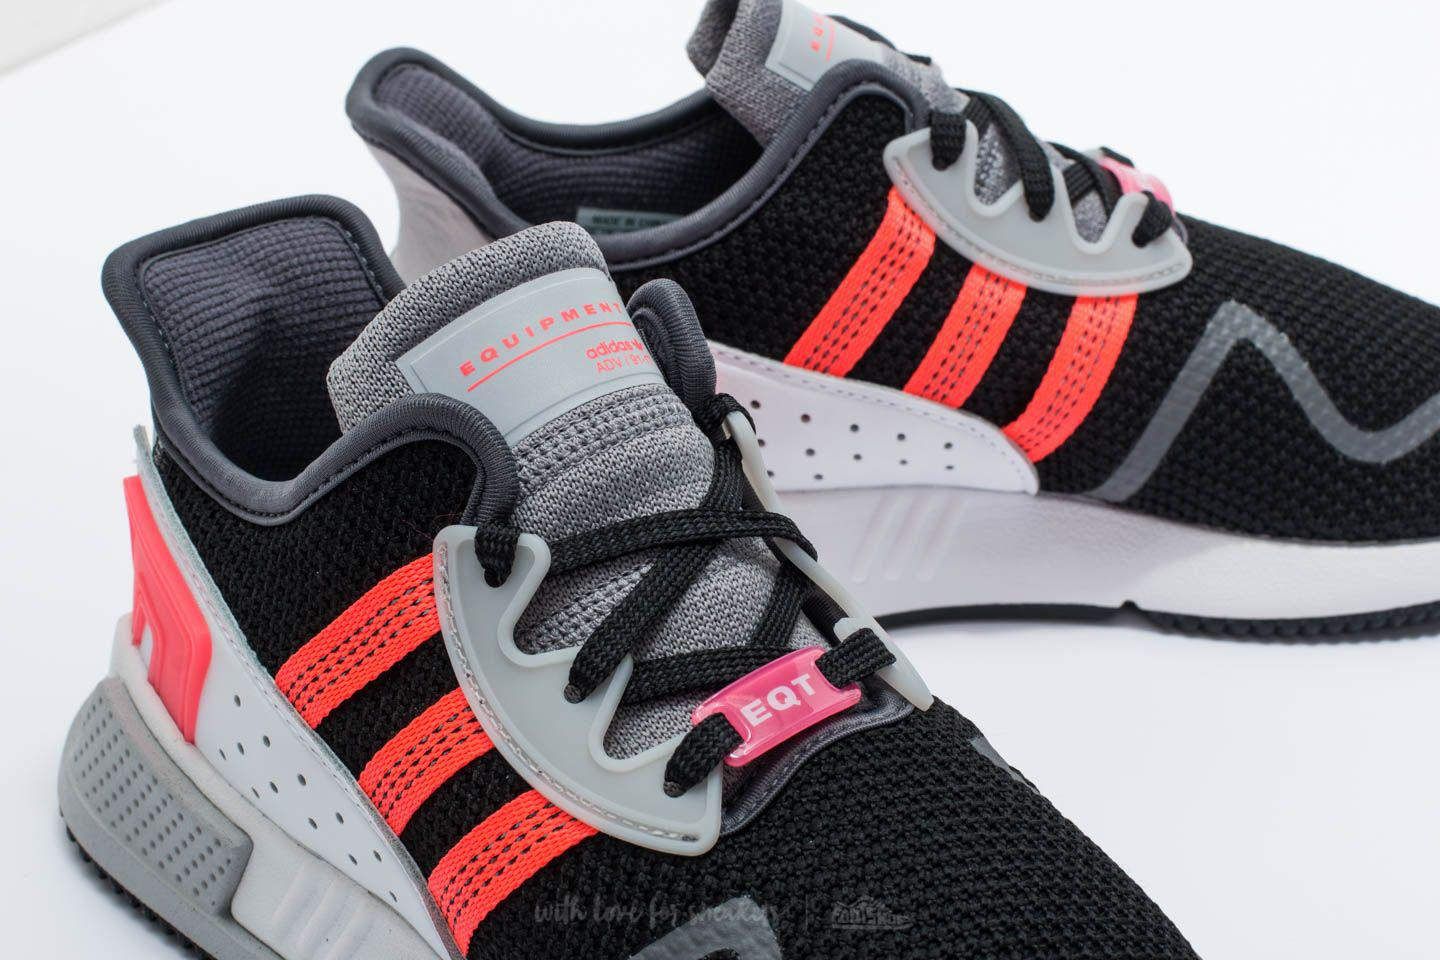 timeless design 345d9 05812 Lyst - adidas Originals Adidas Eqt Cushion Adv Core Black Su